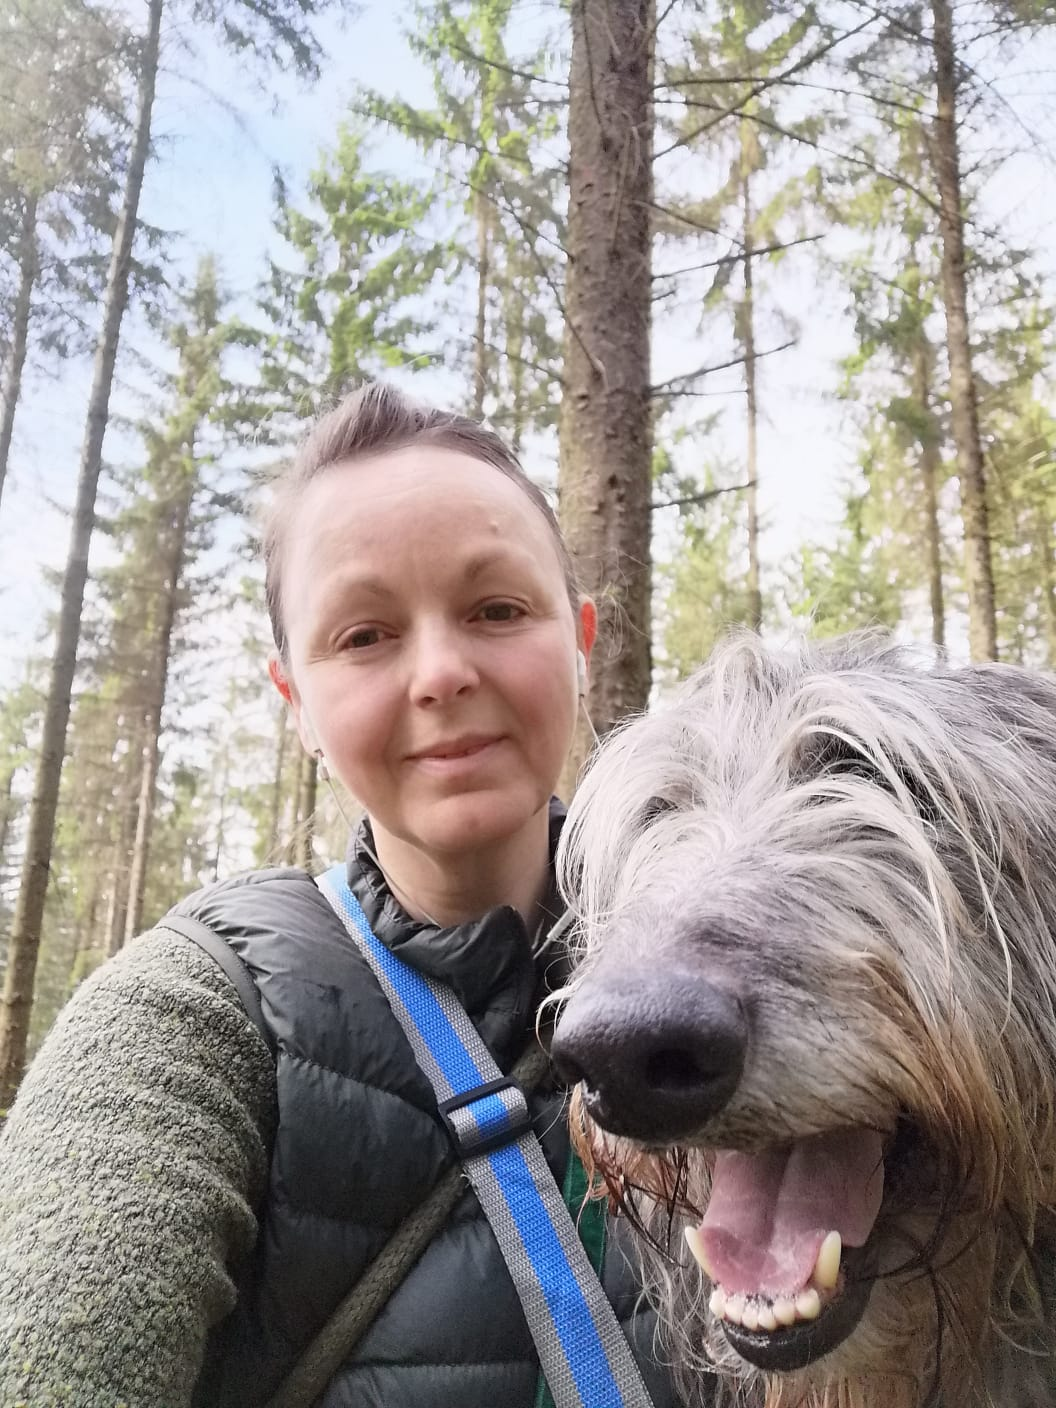 A photo of a woman smiling walking in the woods with her dog on a bright spring day